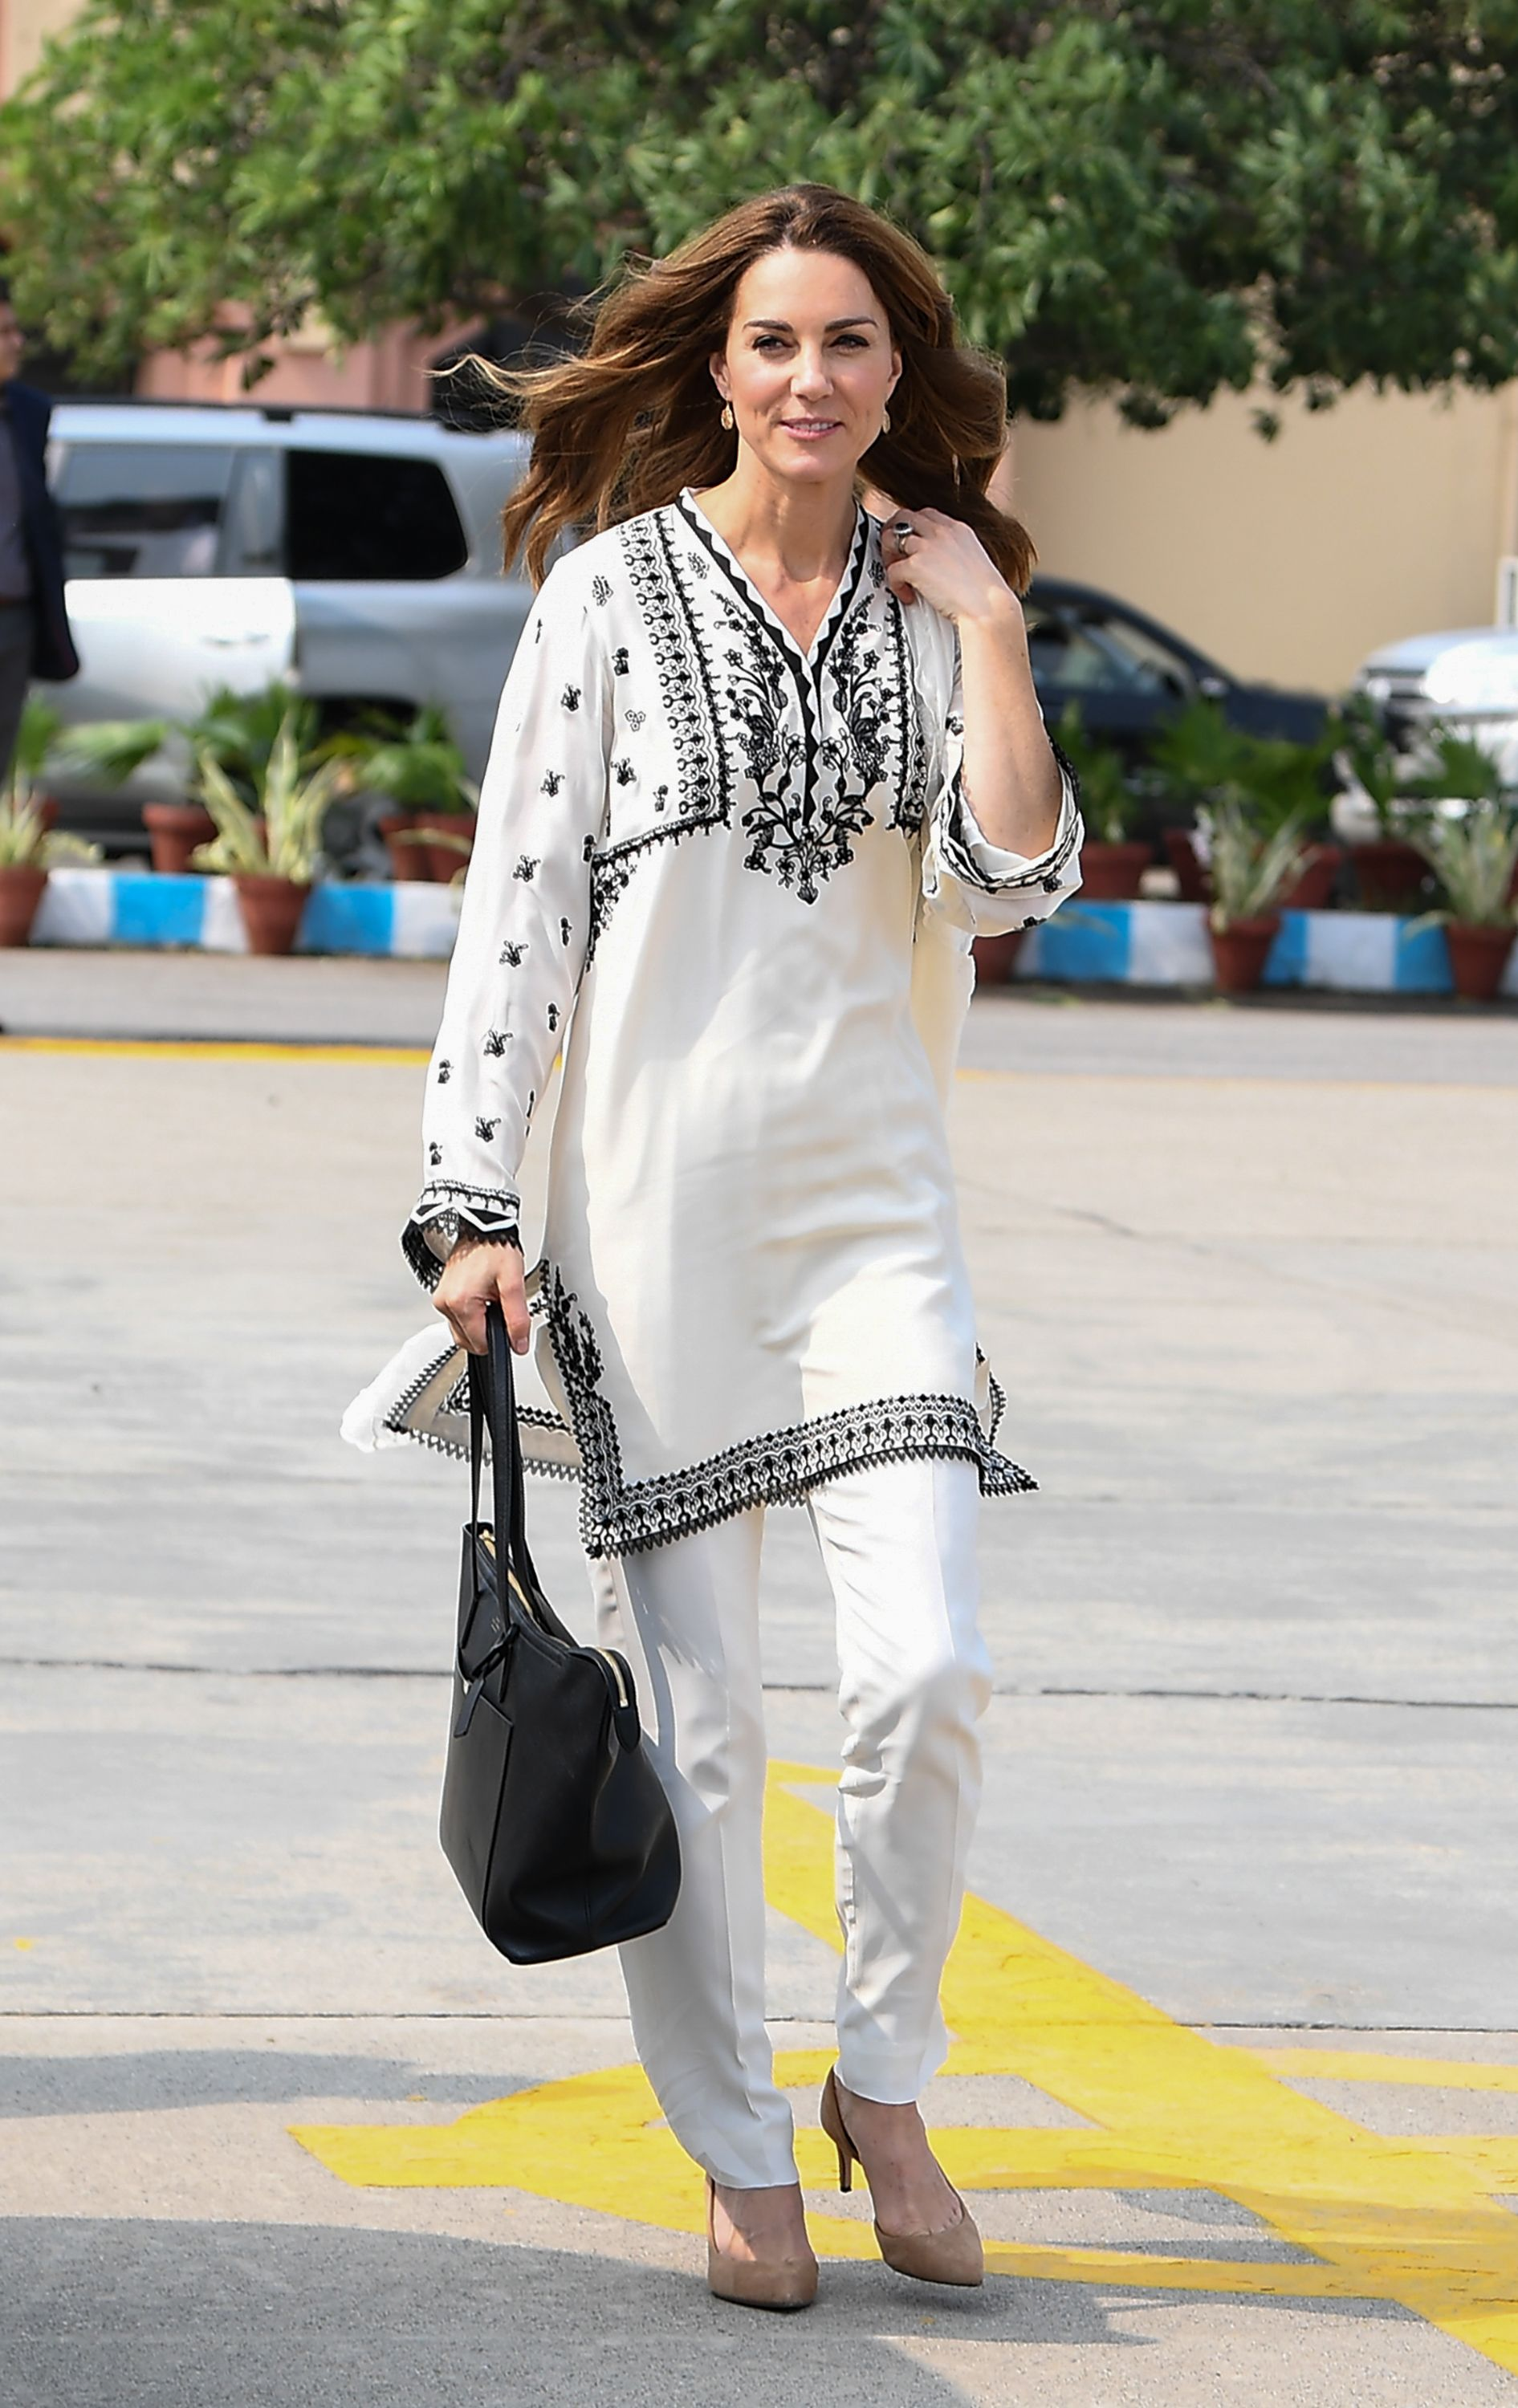 The best looks from the Duchess of Cambridge's royal tour in Pakistan